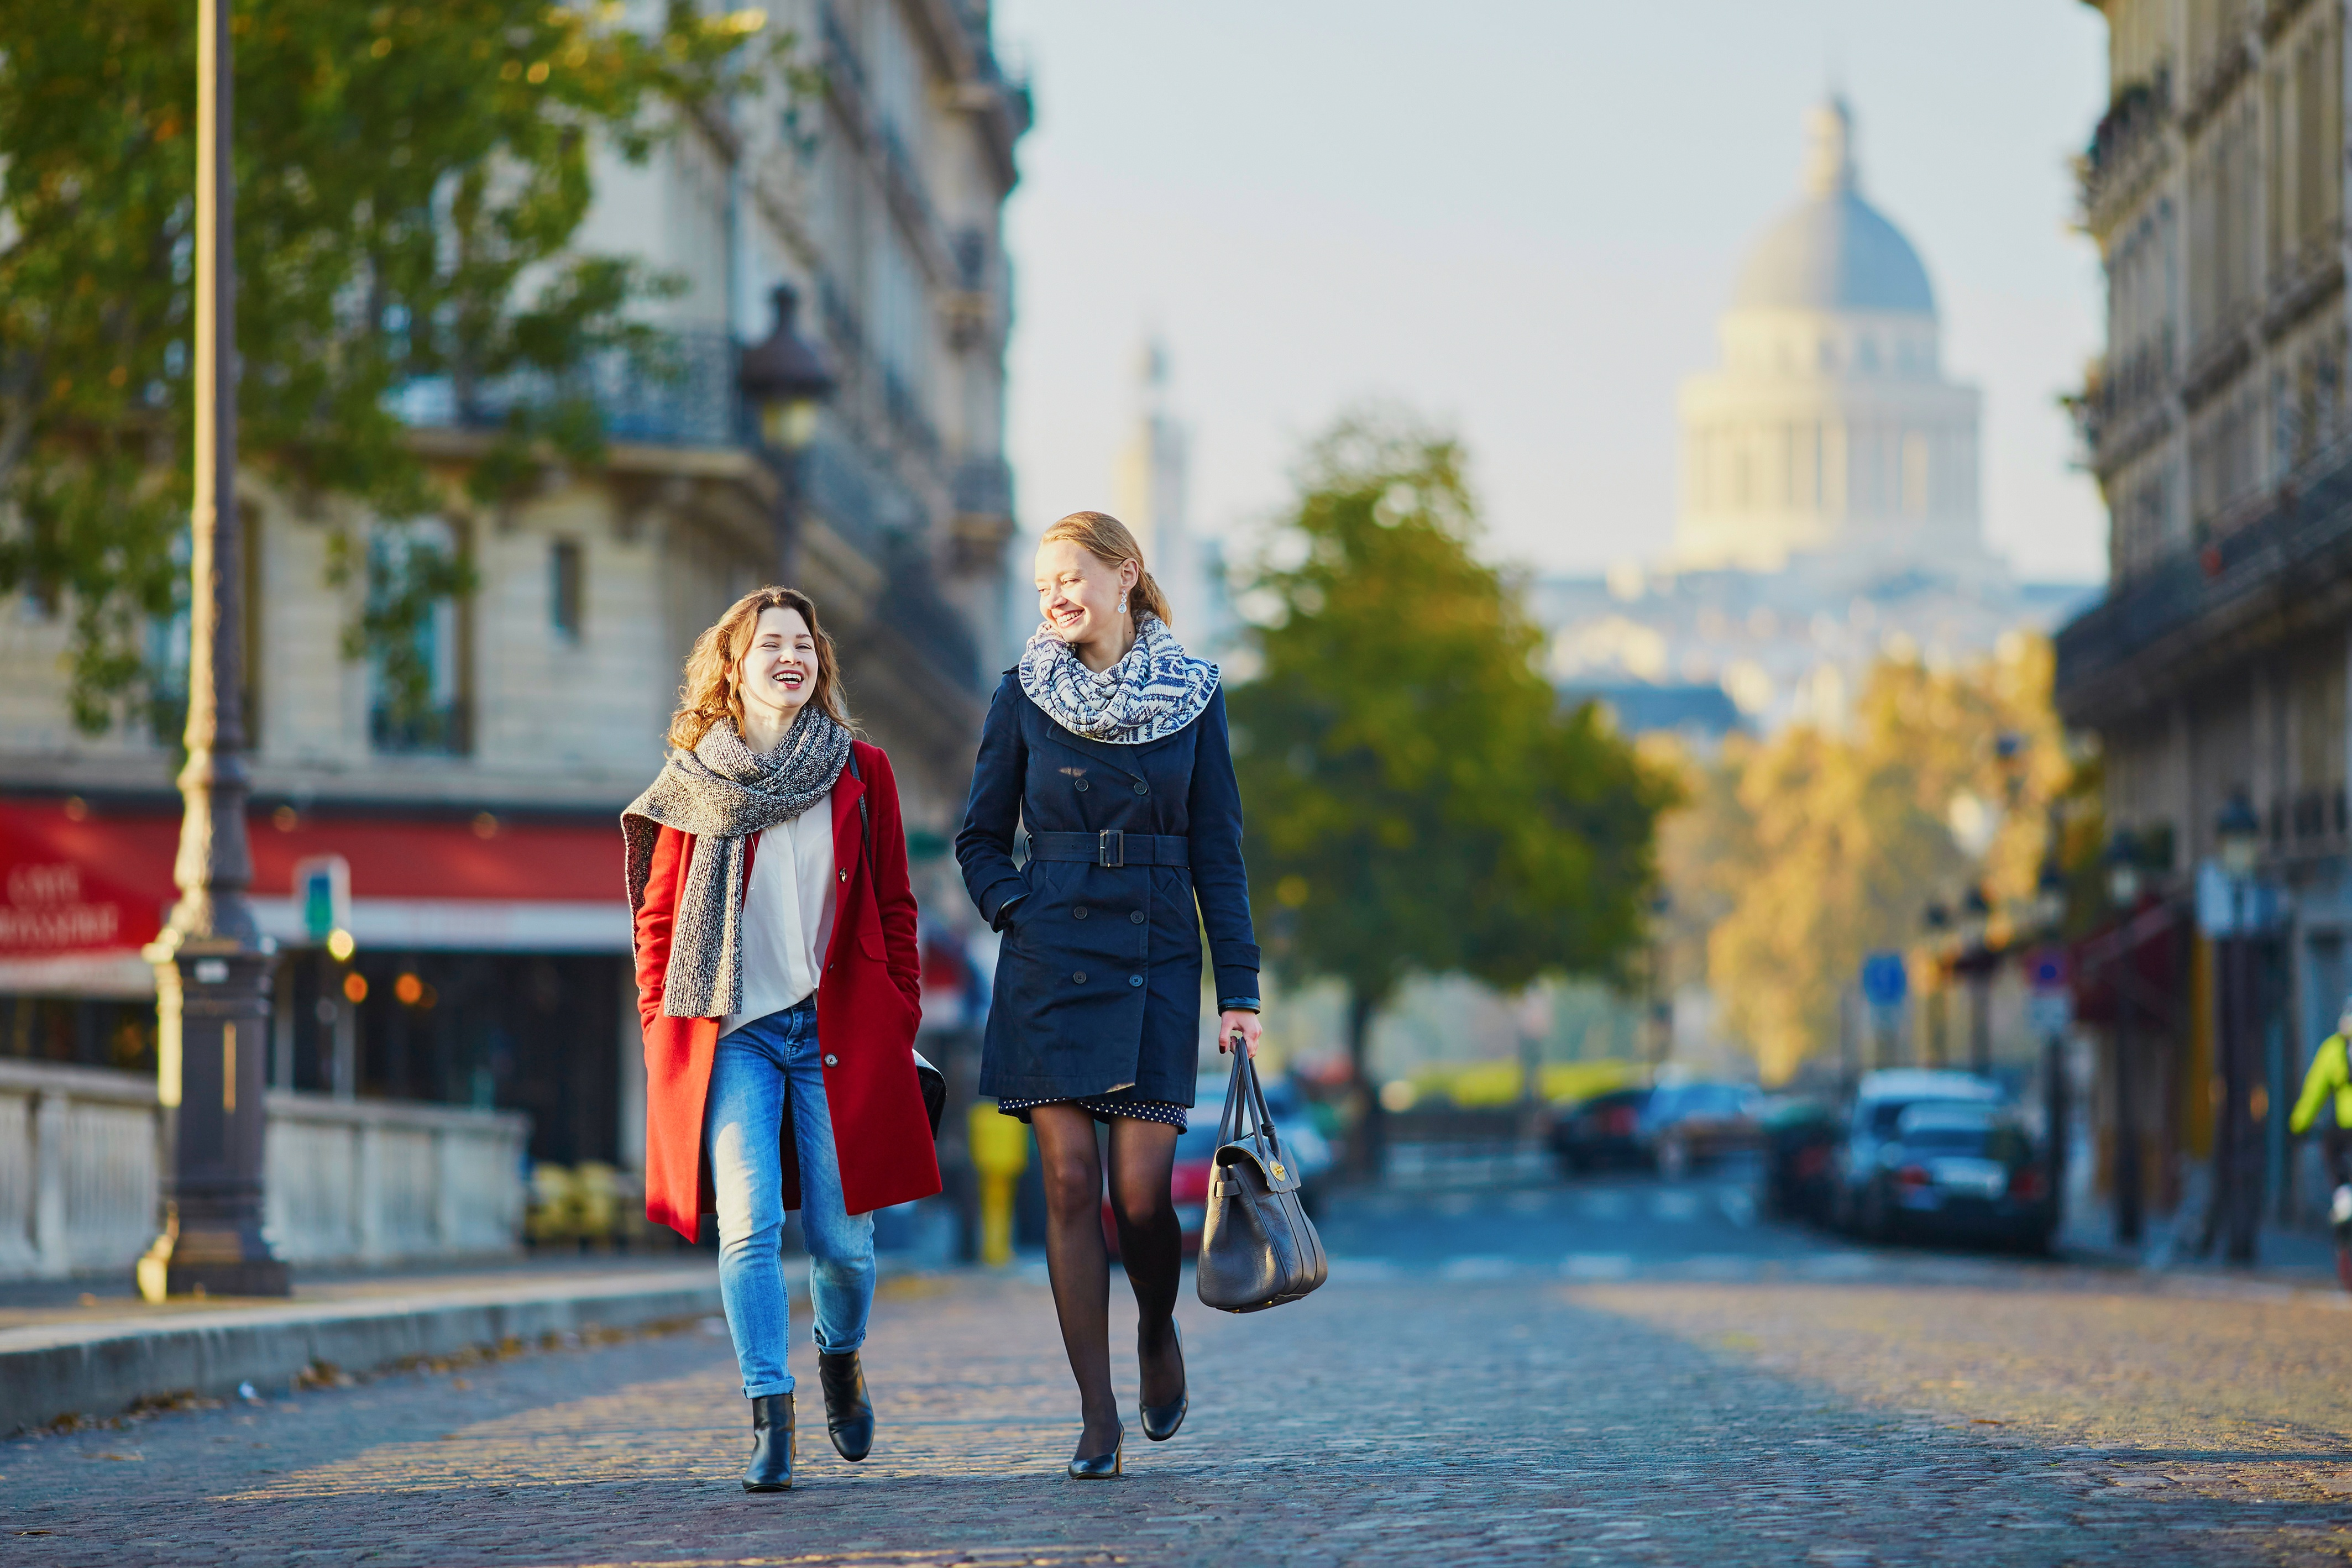 Young women walking in Paris, France speaking French Argot.